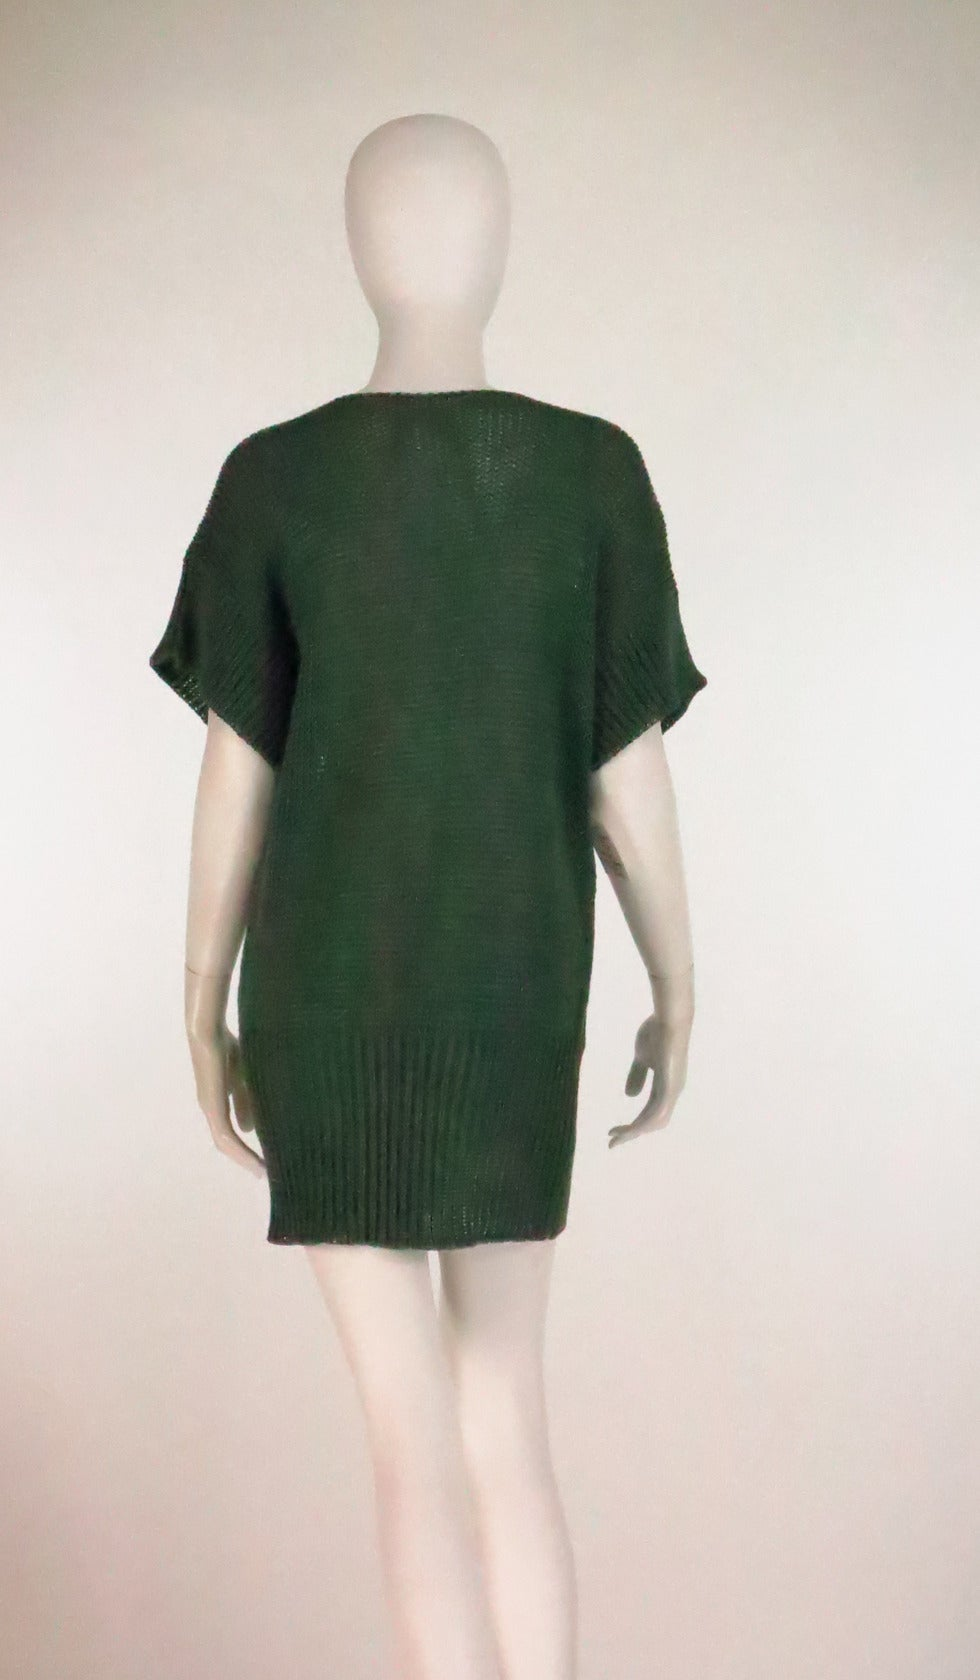 1980s Jil Sander pine green sweater knit tunic In Excellent Condition For Sale In West Palm Beach, FL